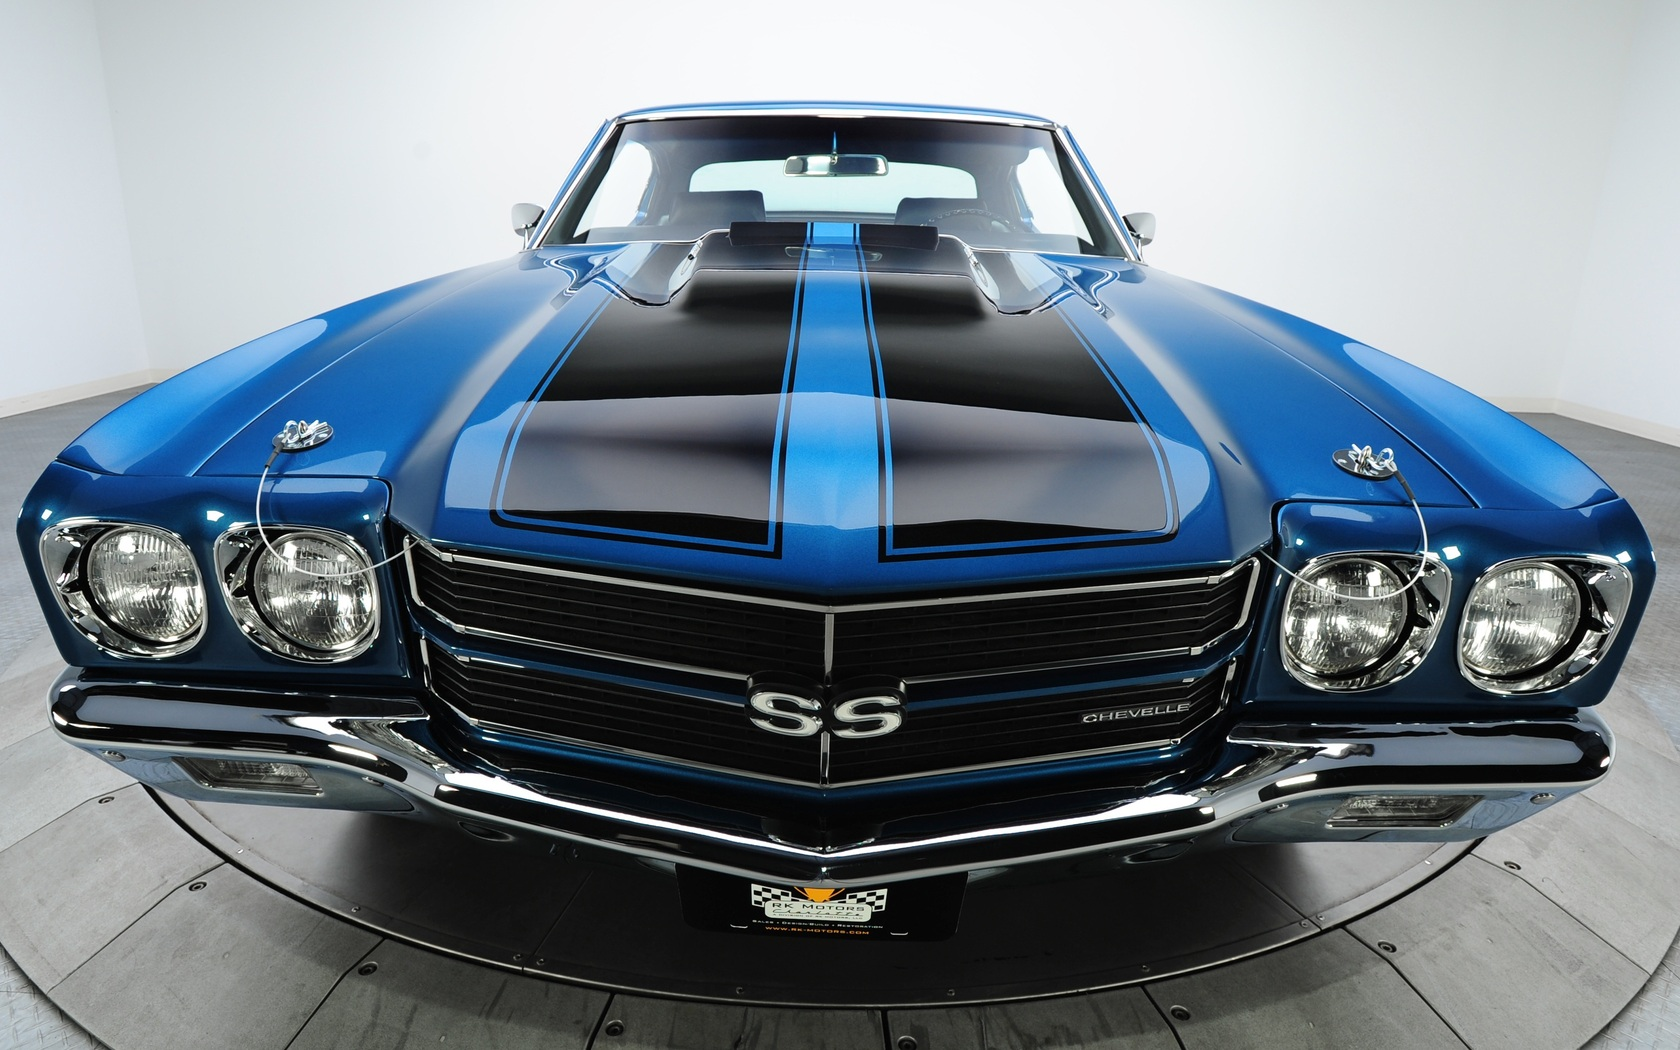 Could muscle cars for sale in Australia one face request for a ban?